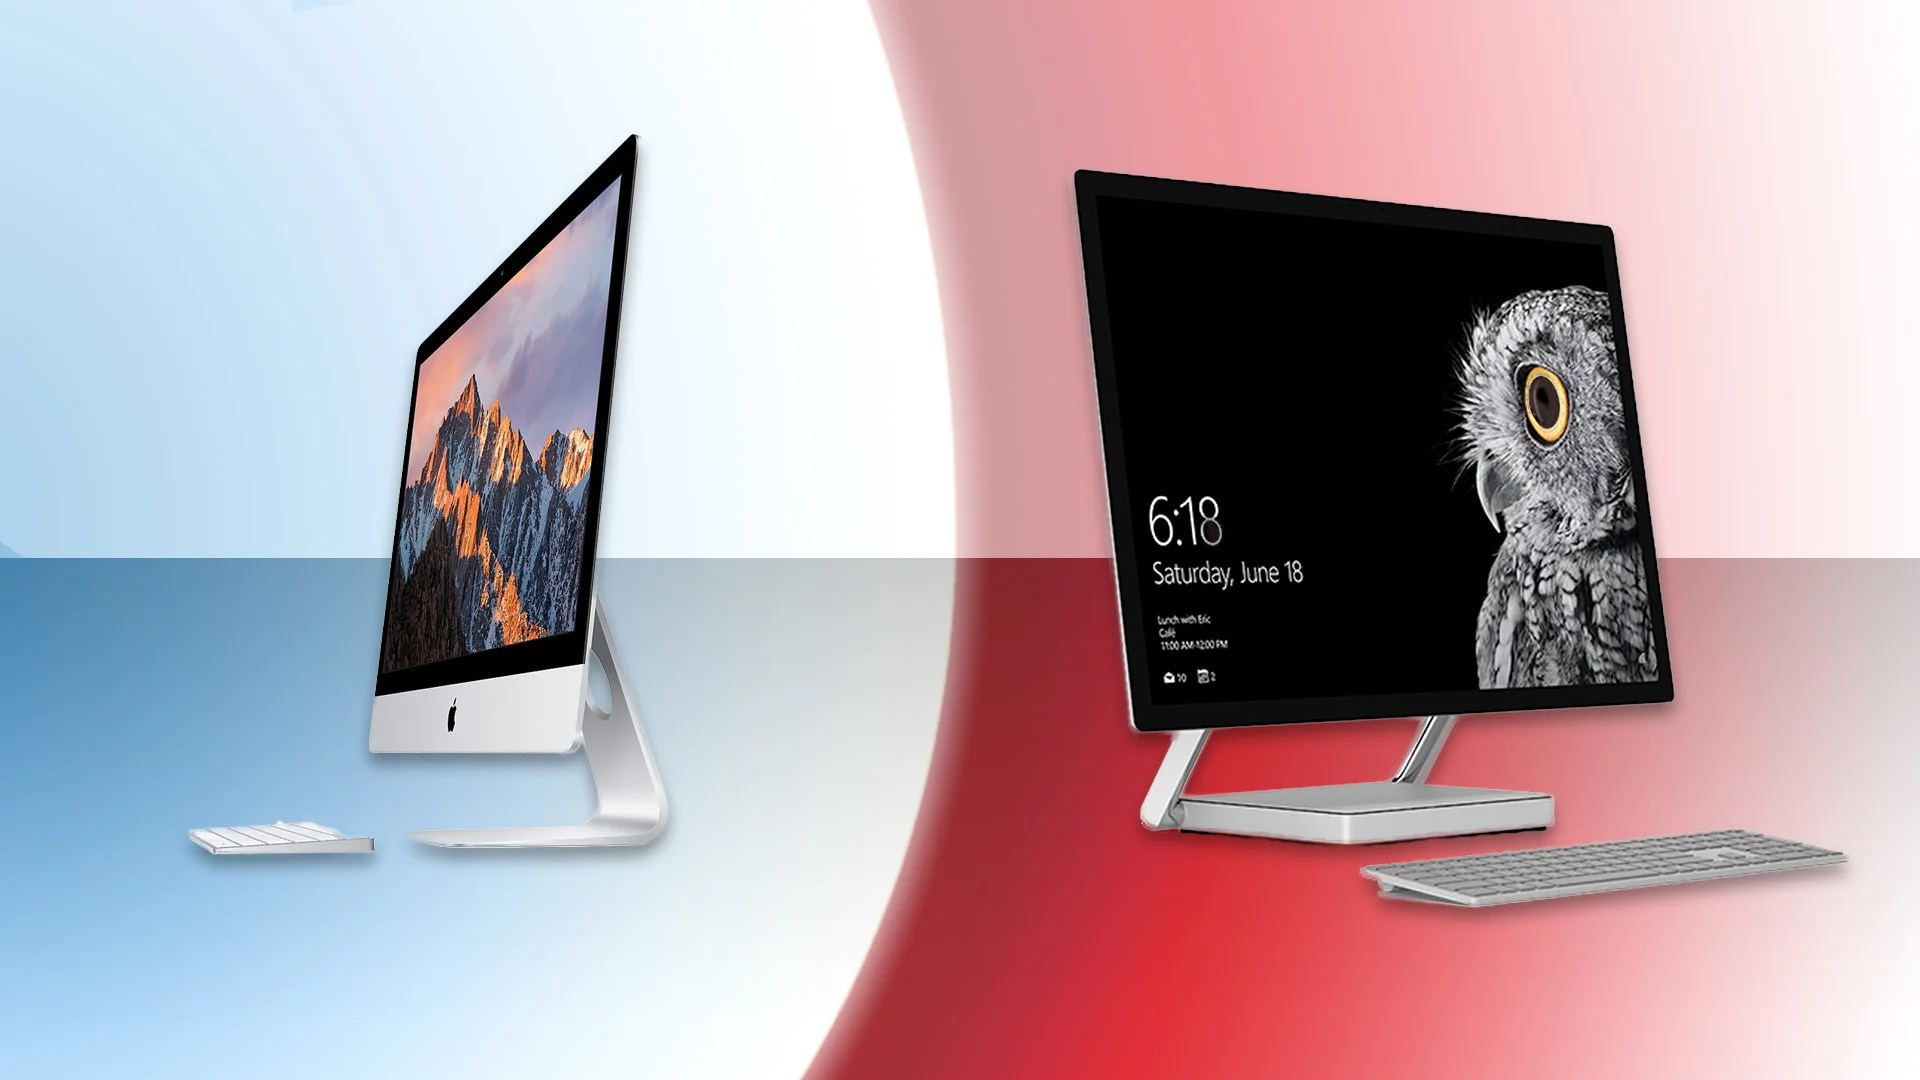 Samsung Galaxy Wallpaper Hd Surface Studio Vs Imac 2017 Which Is Better Trusted